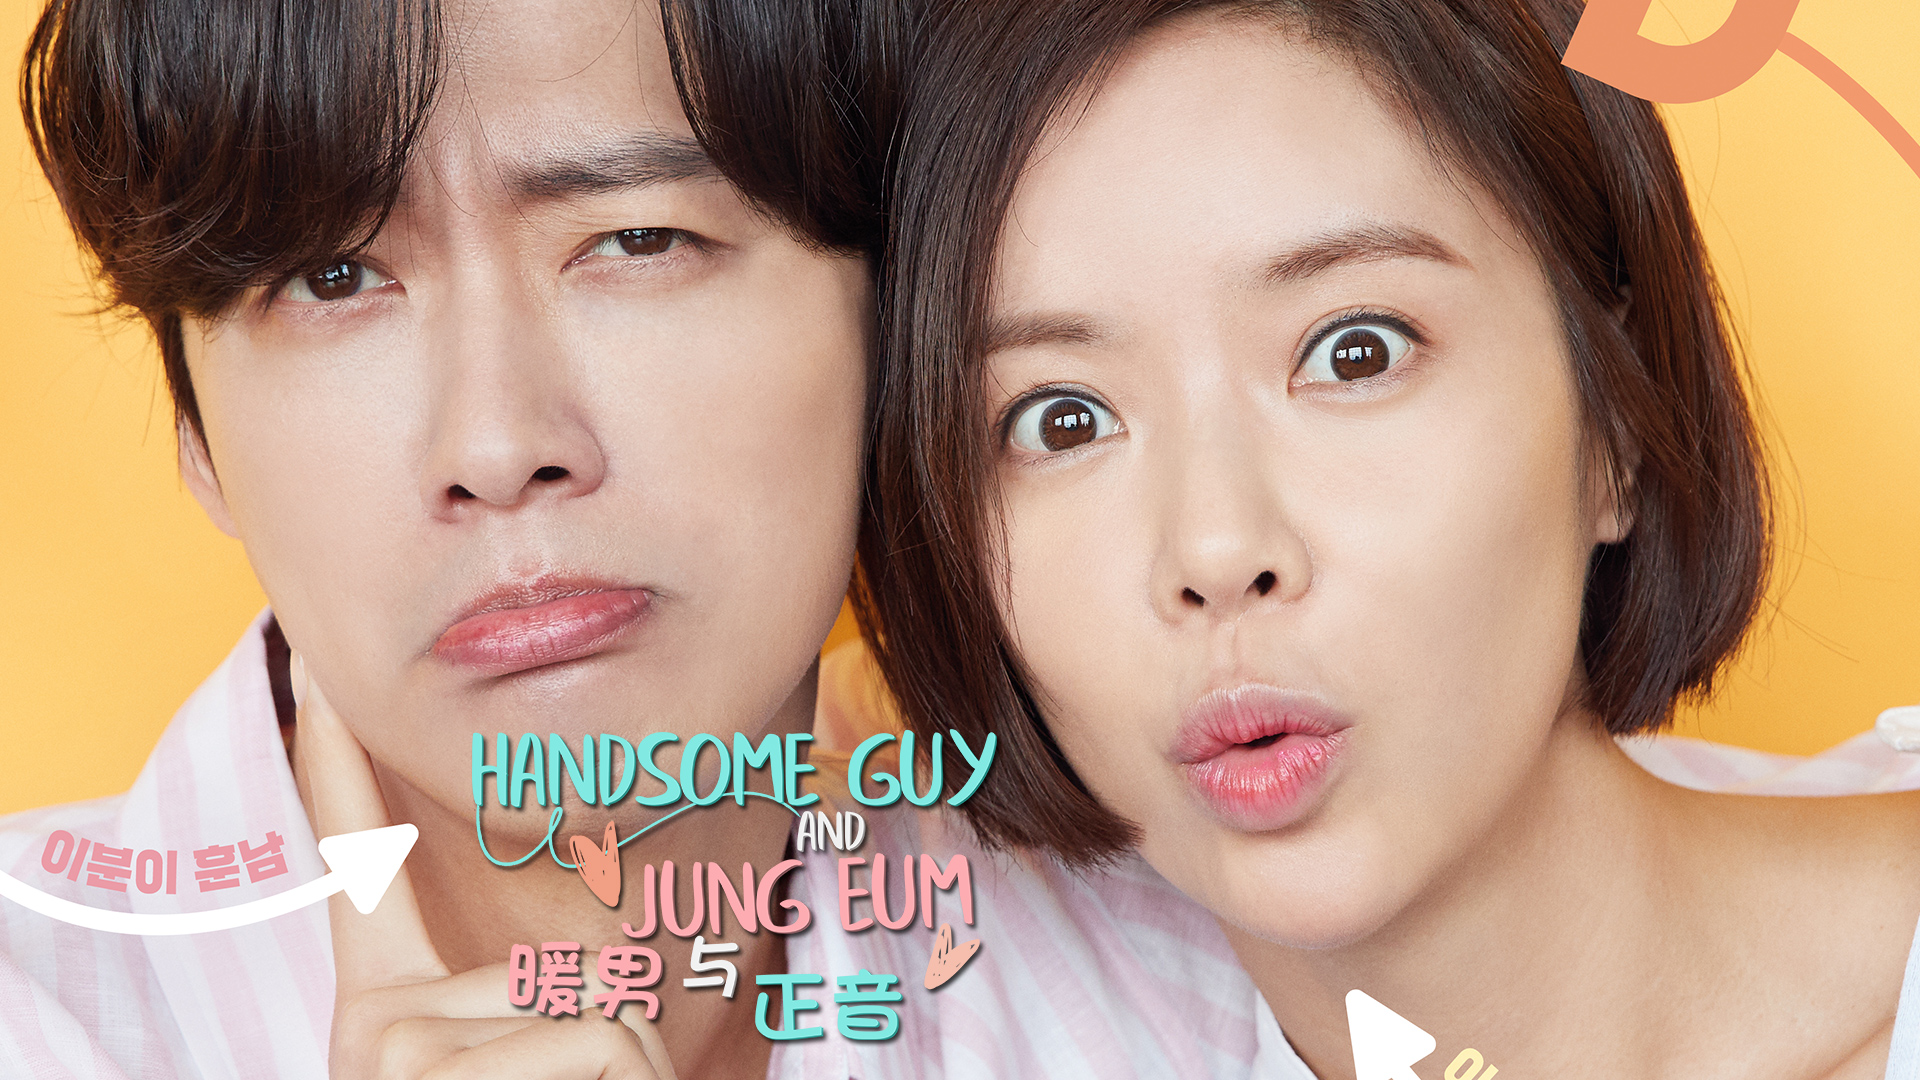 HANDSOME GUY AND JUNG EUM